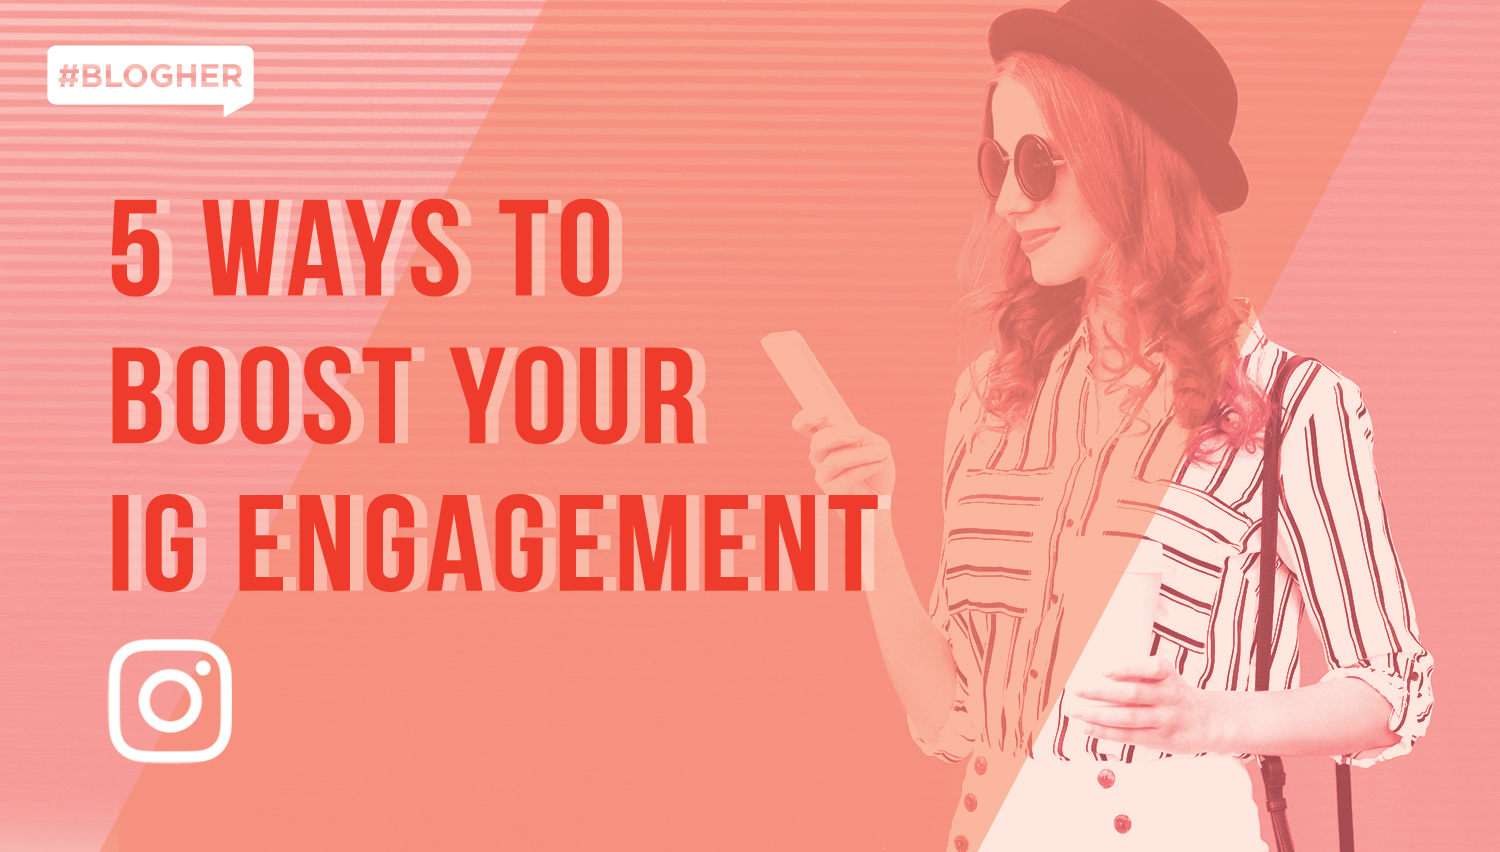 grow your instagram engagement - Check out these quick tips and tricks from social media experts to grow your engagement on one of the most important platforms with one of the most complicated algorithms.